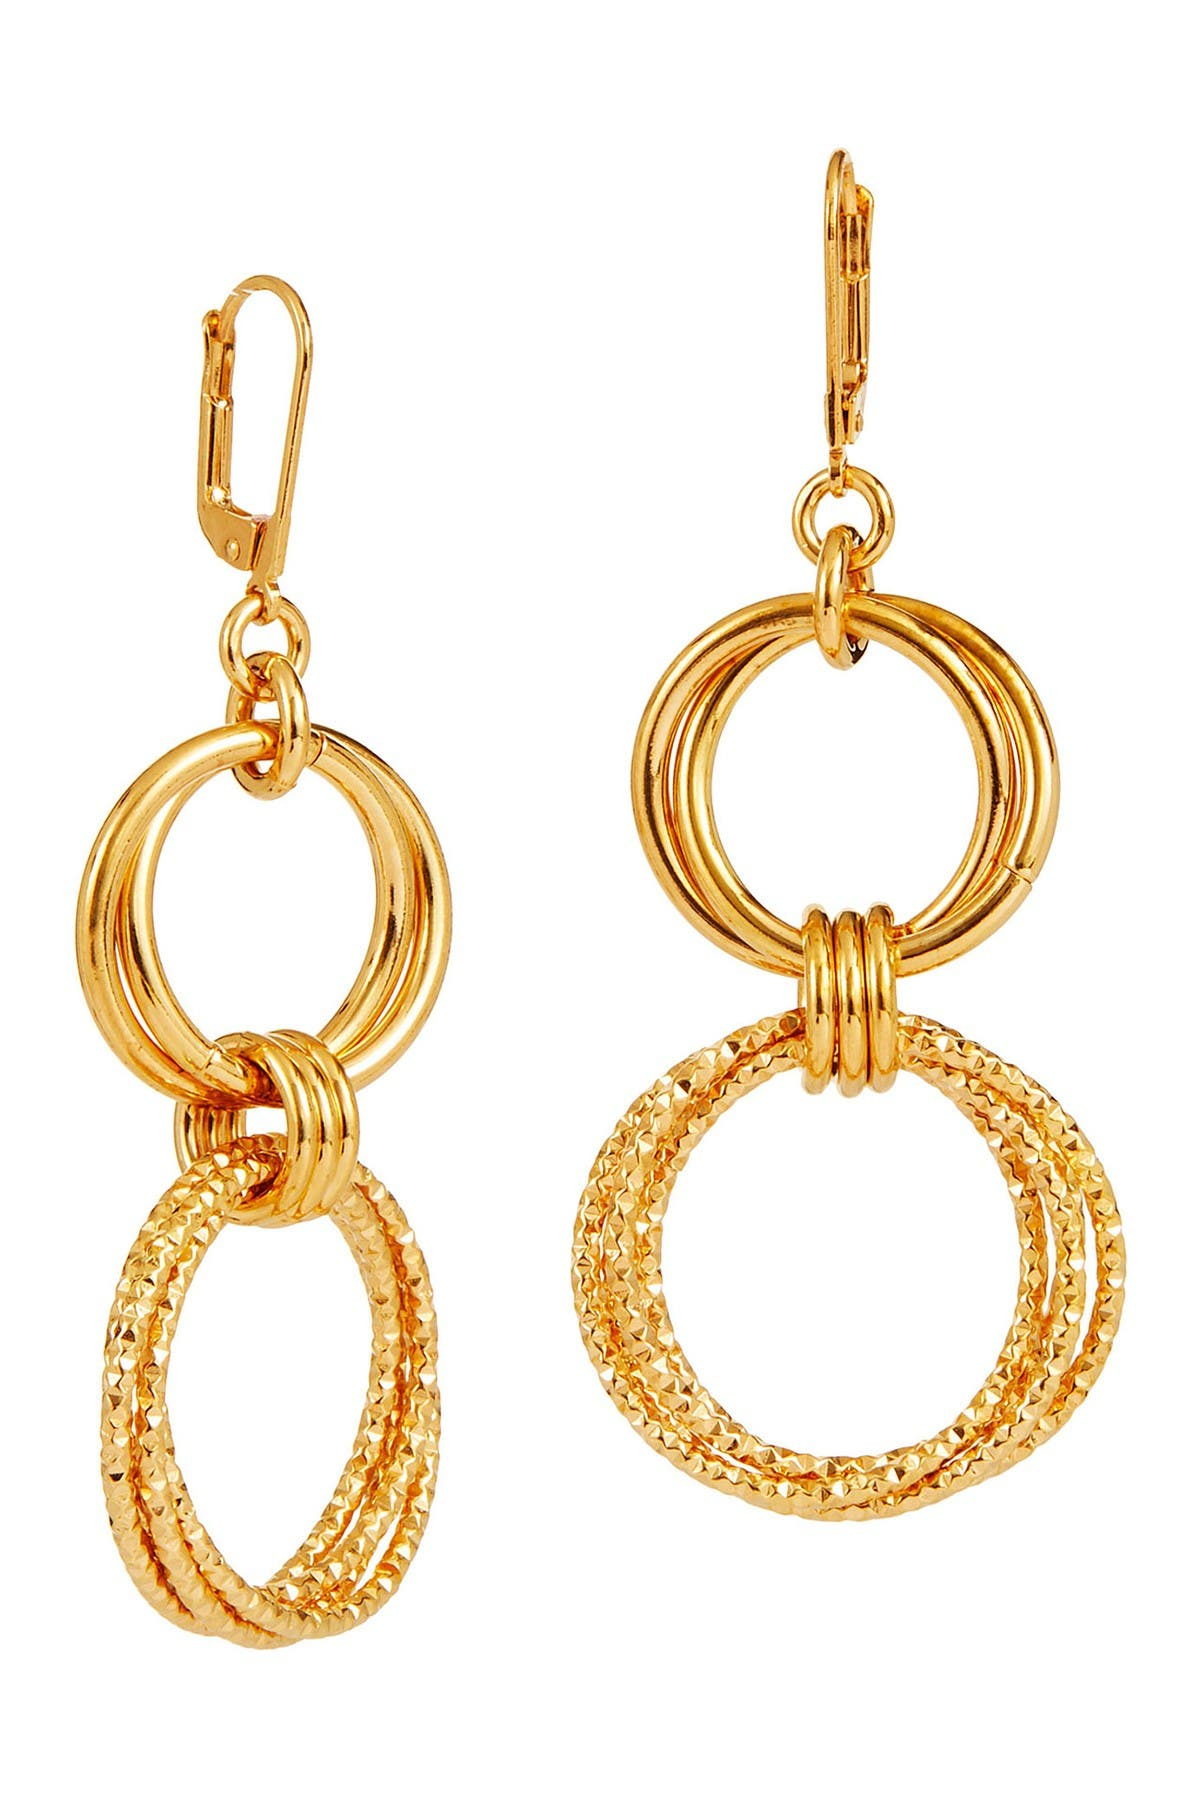 Image of Savvy Cie Italian Multi Link Drop Earring